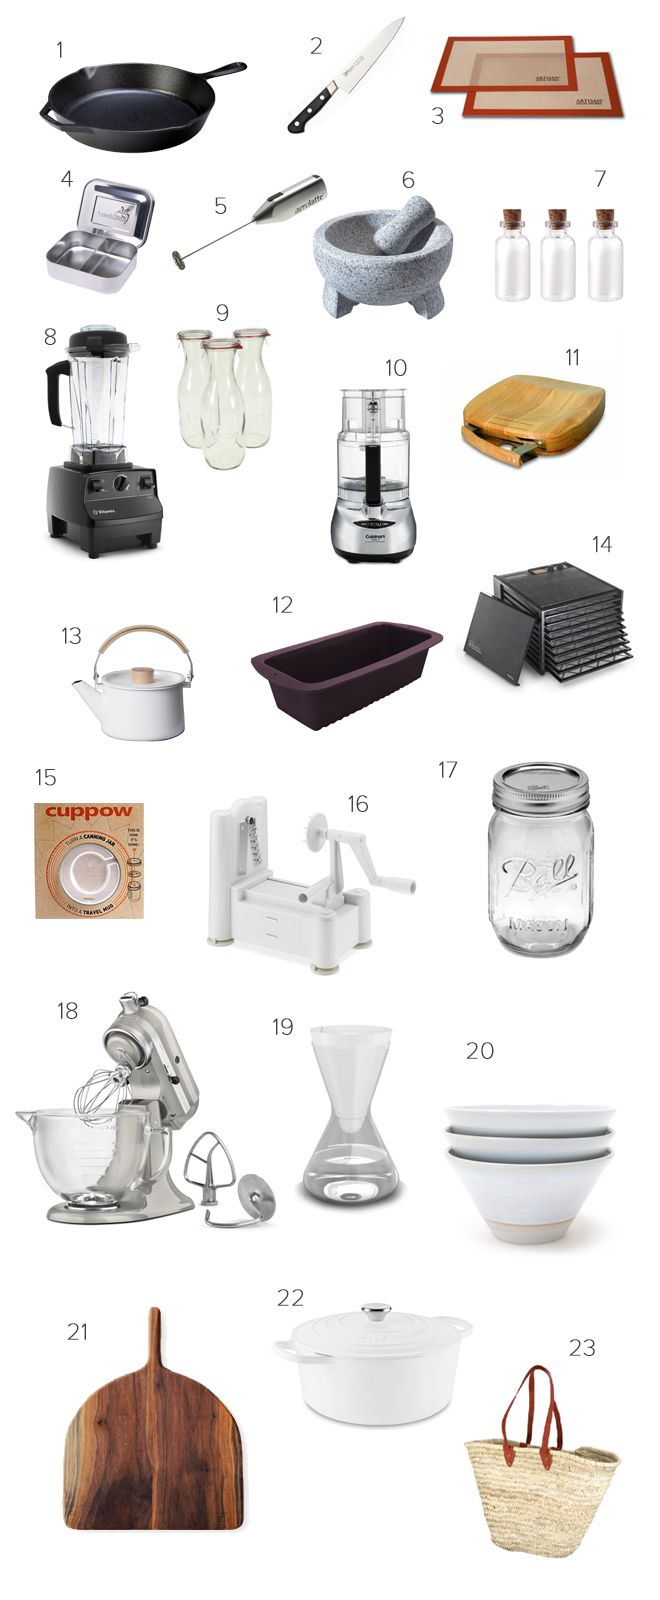 Kitchen Tools And Equipment 44 Best Cuppow And Bnto Clippings Images On Pinterest  Canning